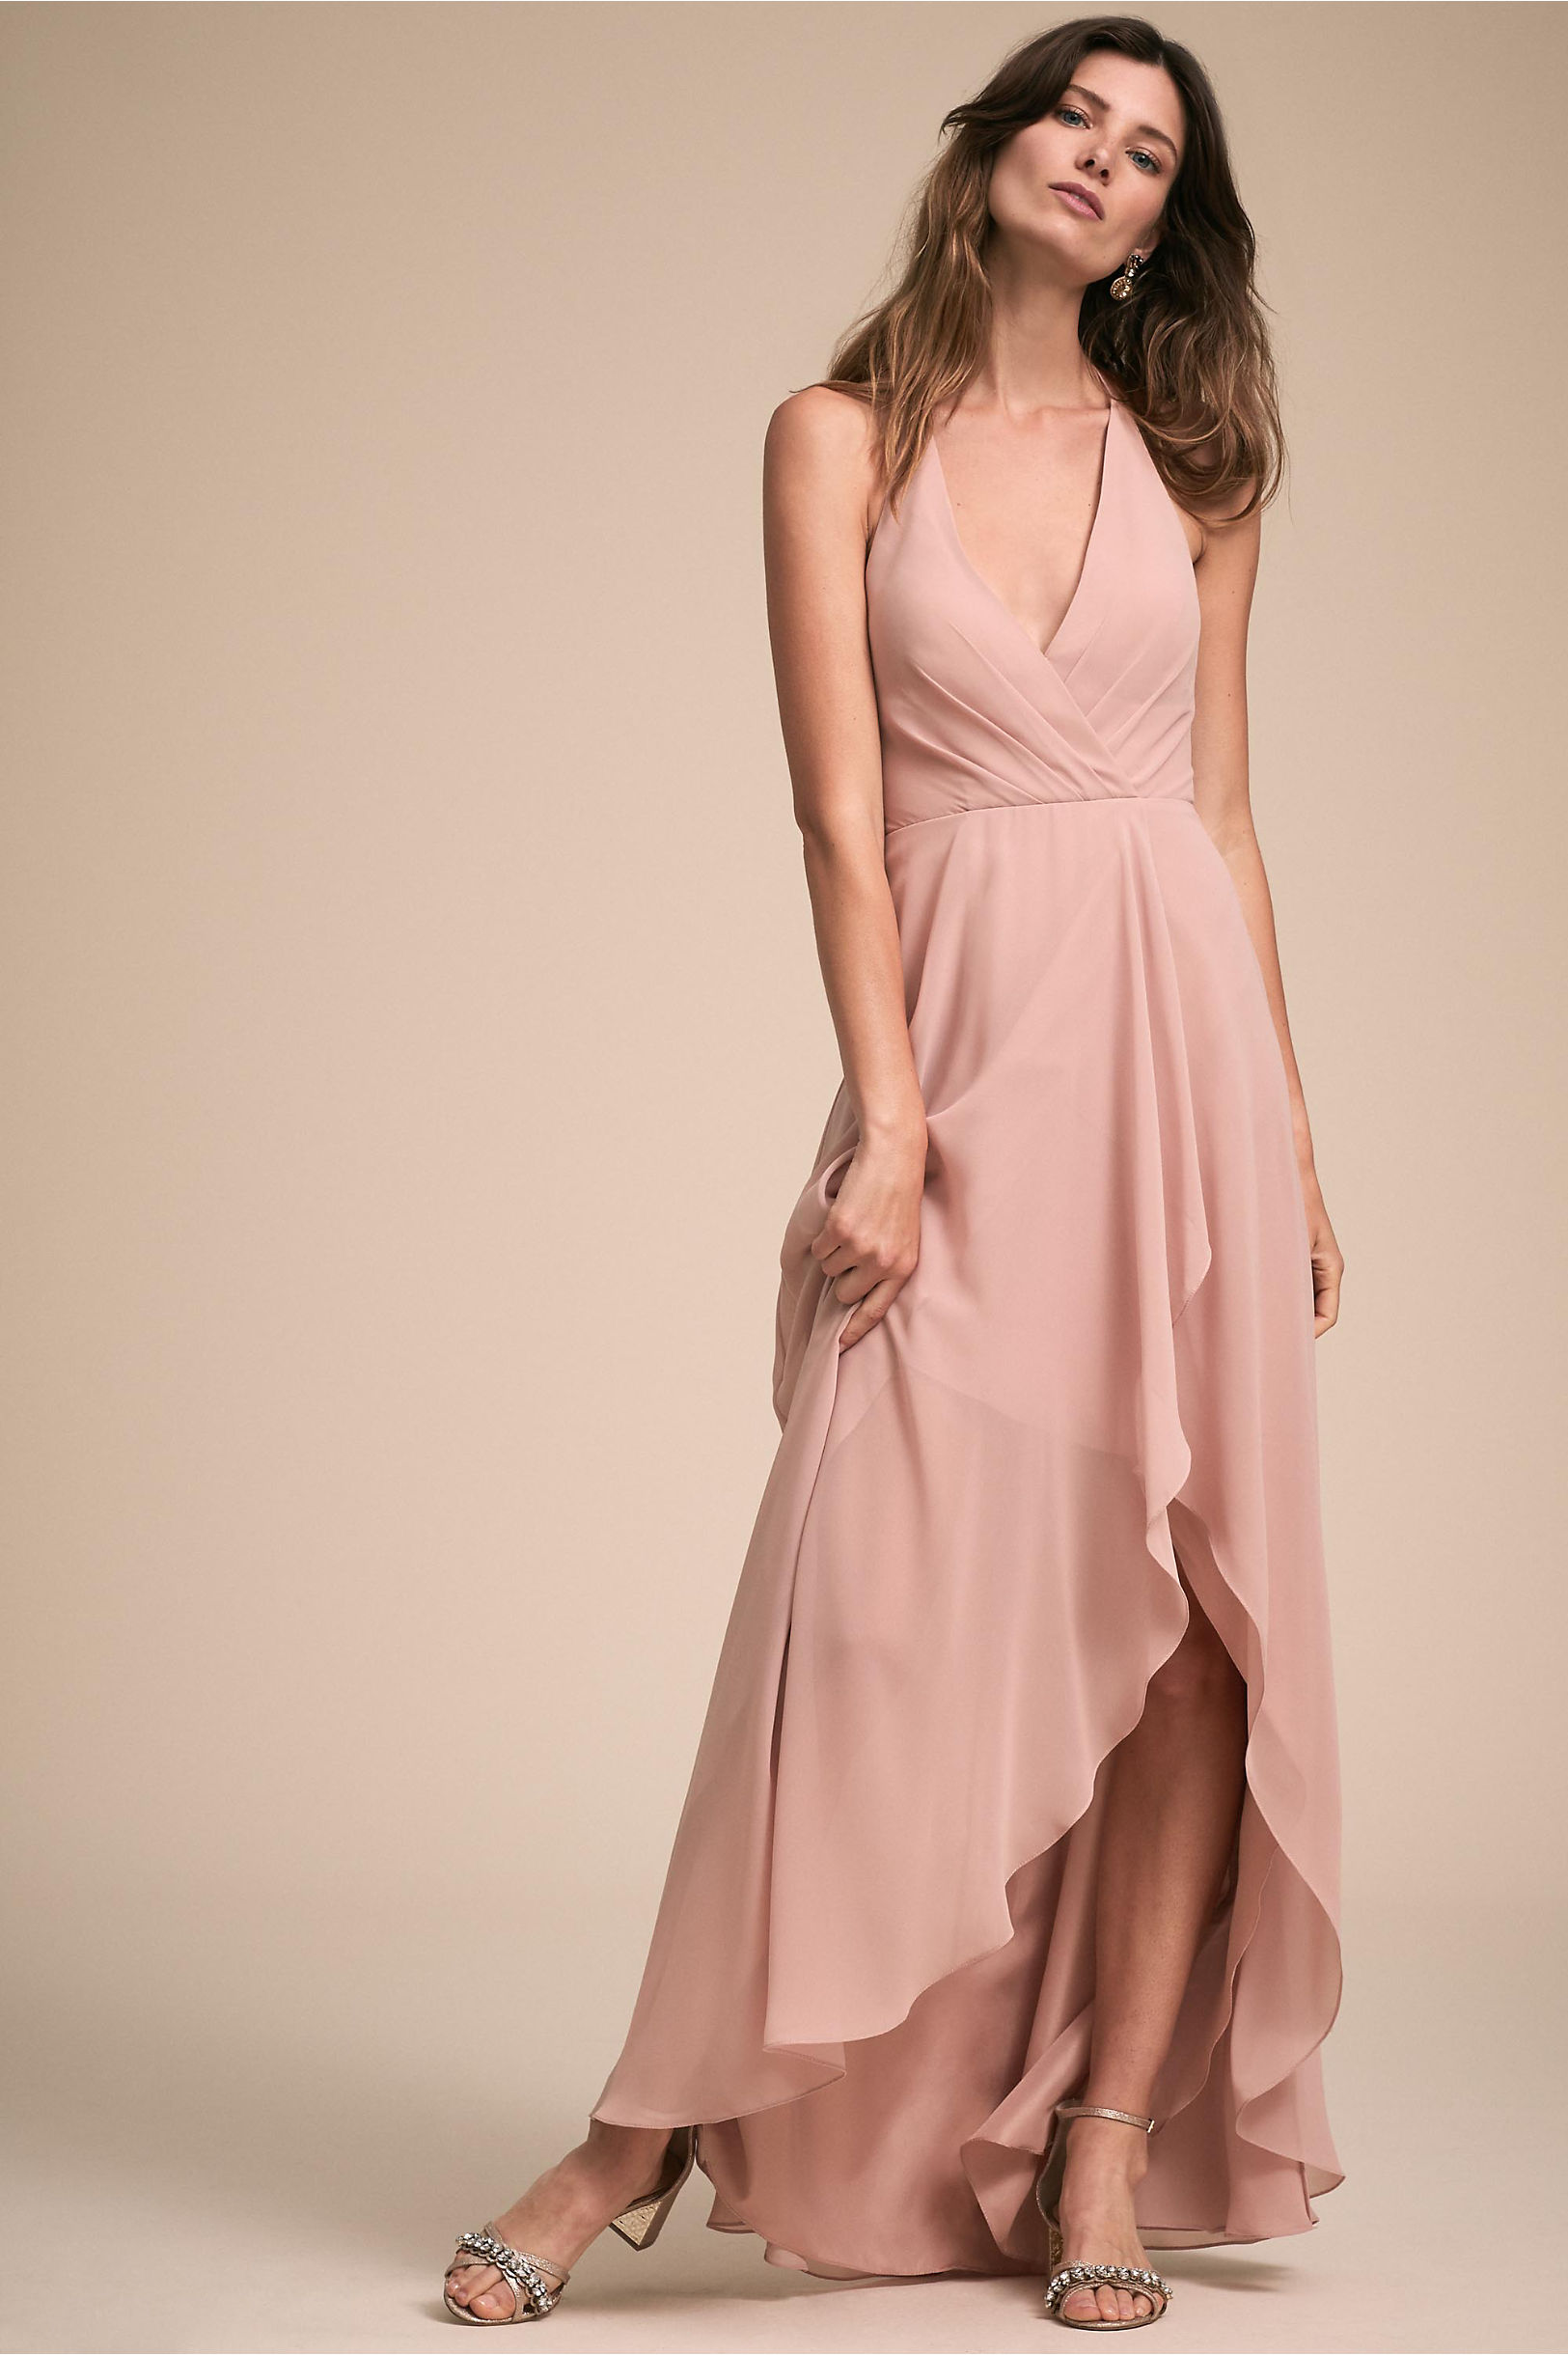 904ca75d413c9 BHLDN's Jenny Yoo Farrah Dress in Whipped Apricot | Products ...